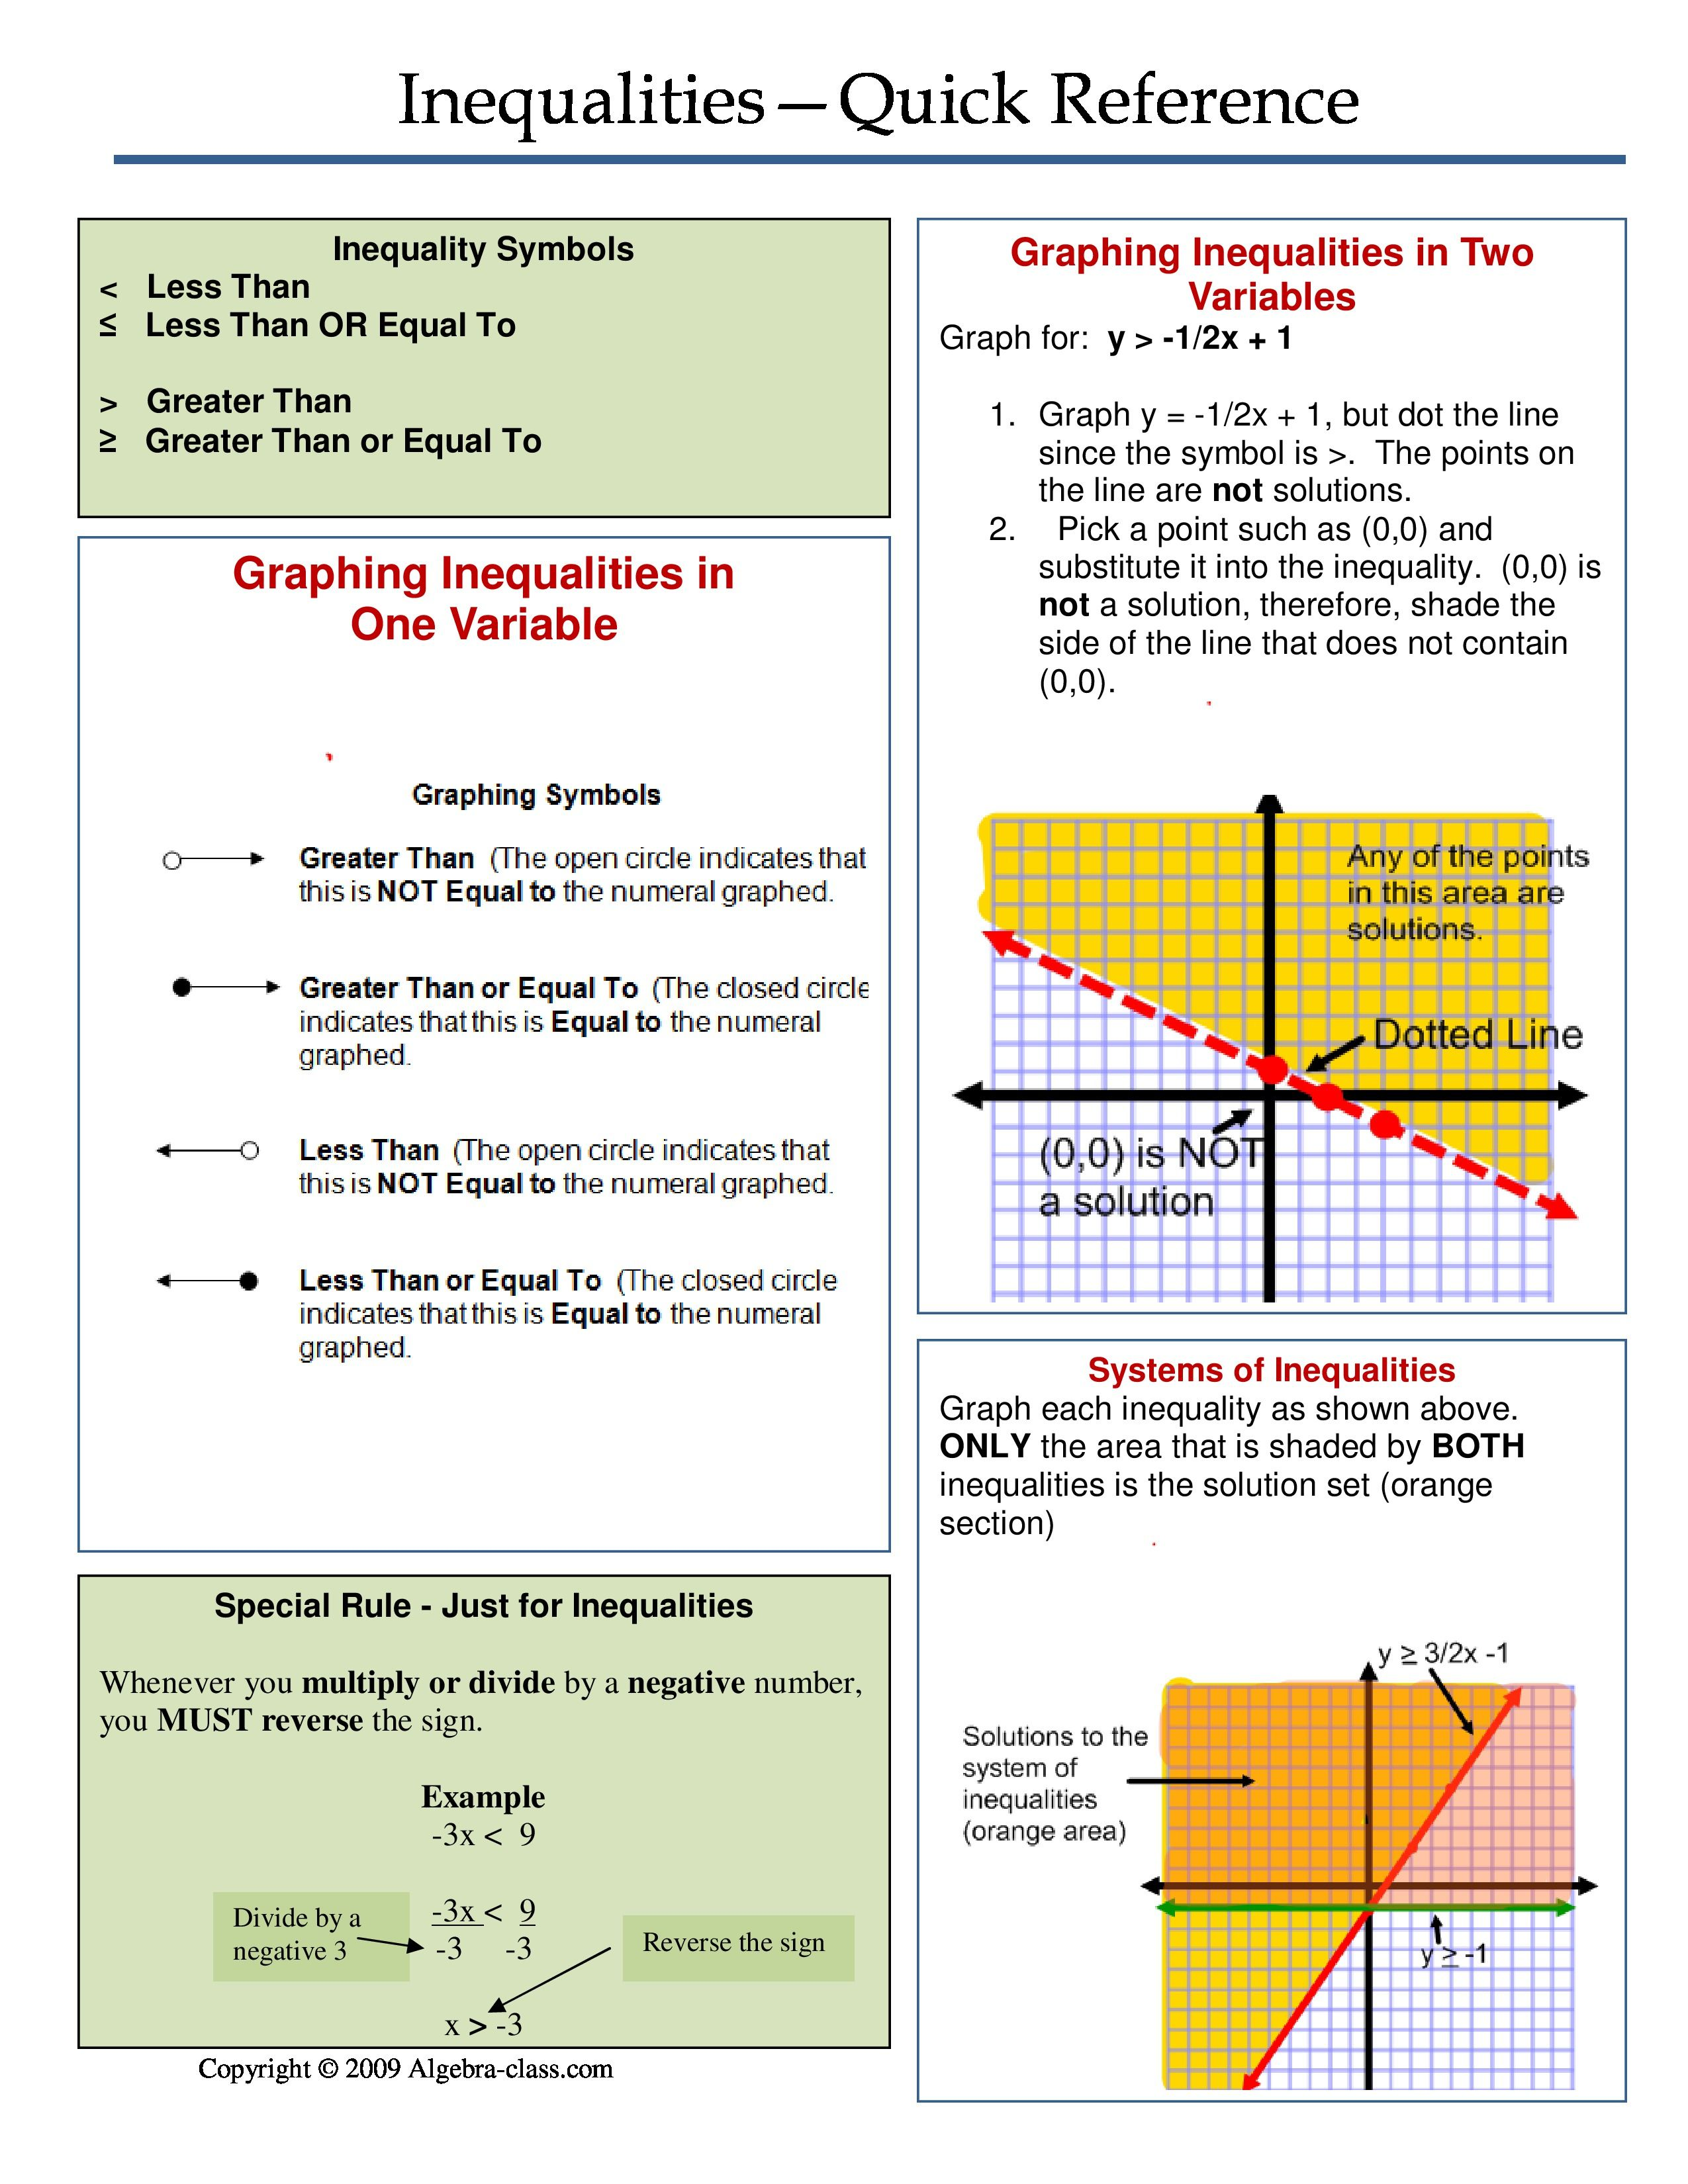 One page notes worksheet for inequalities unit graphing